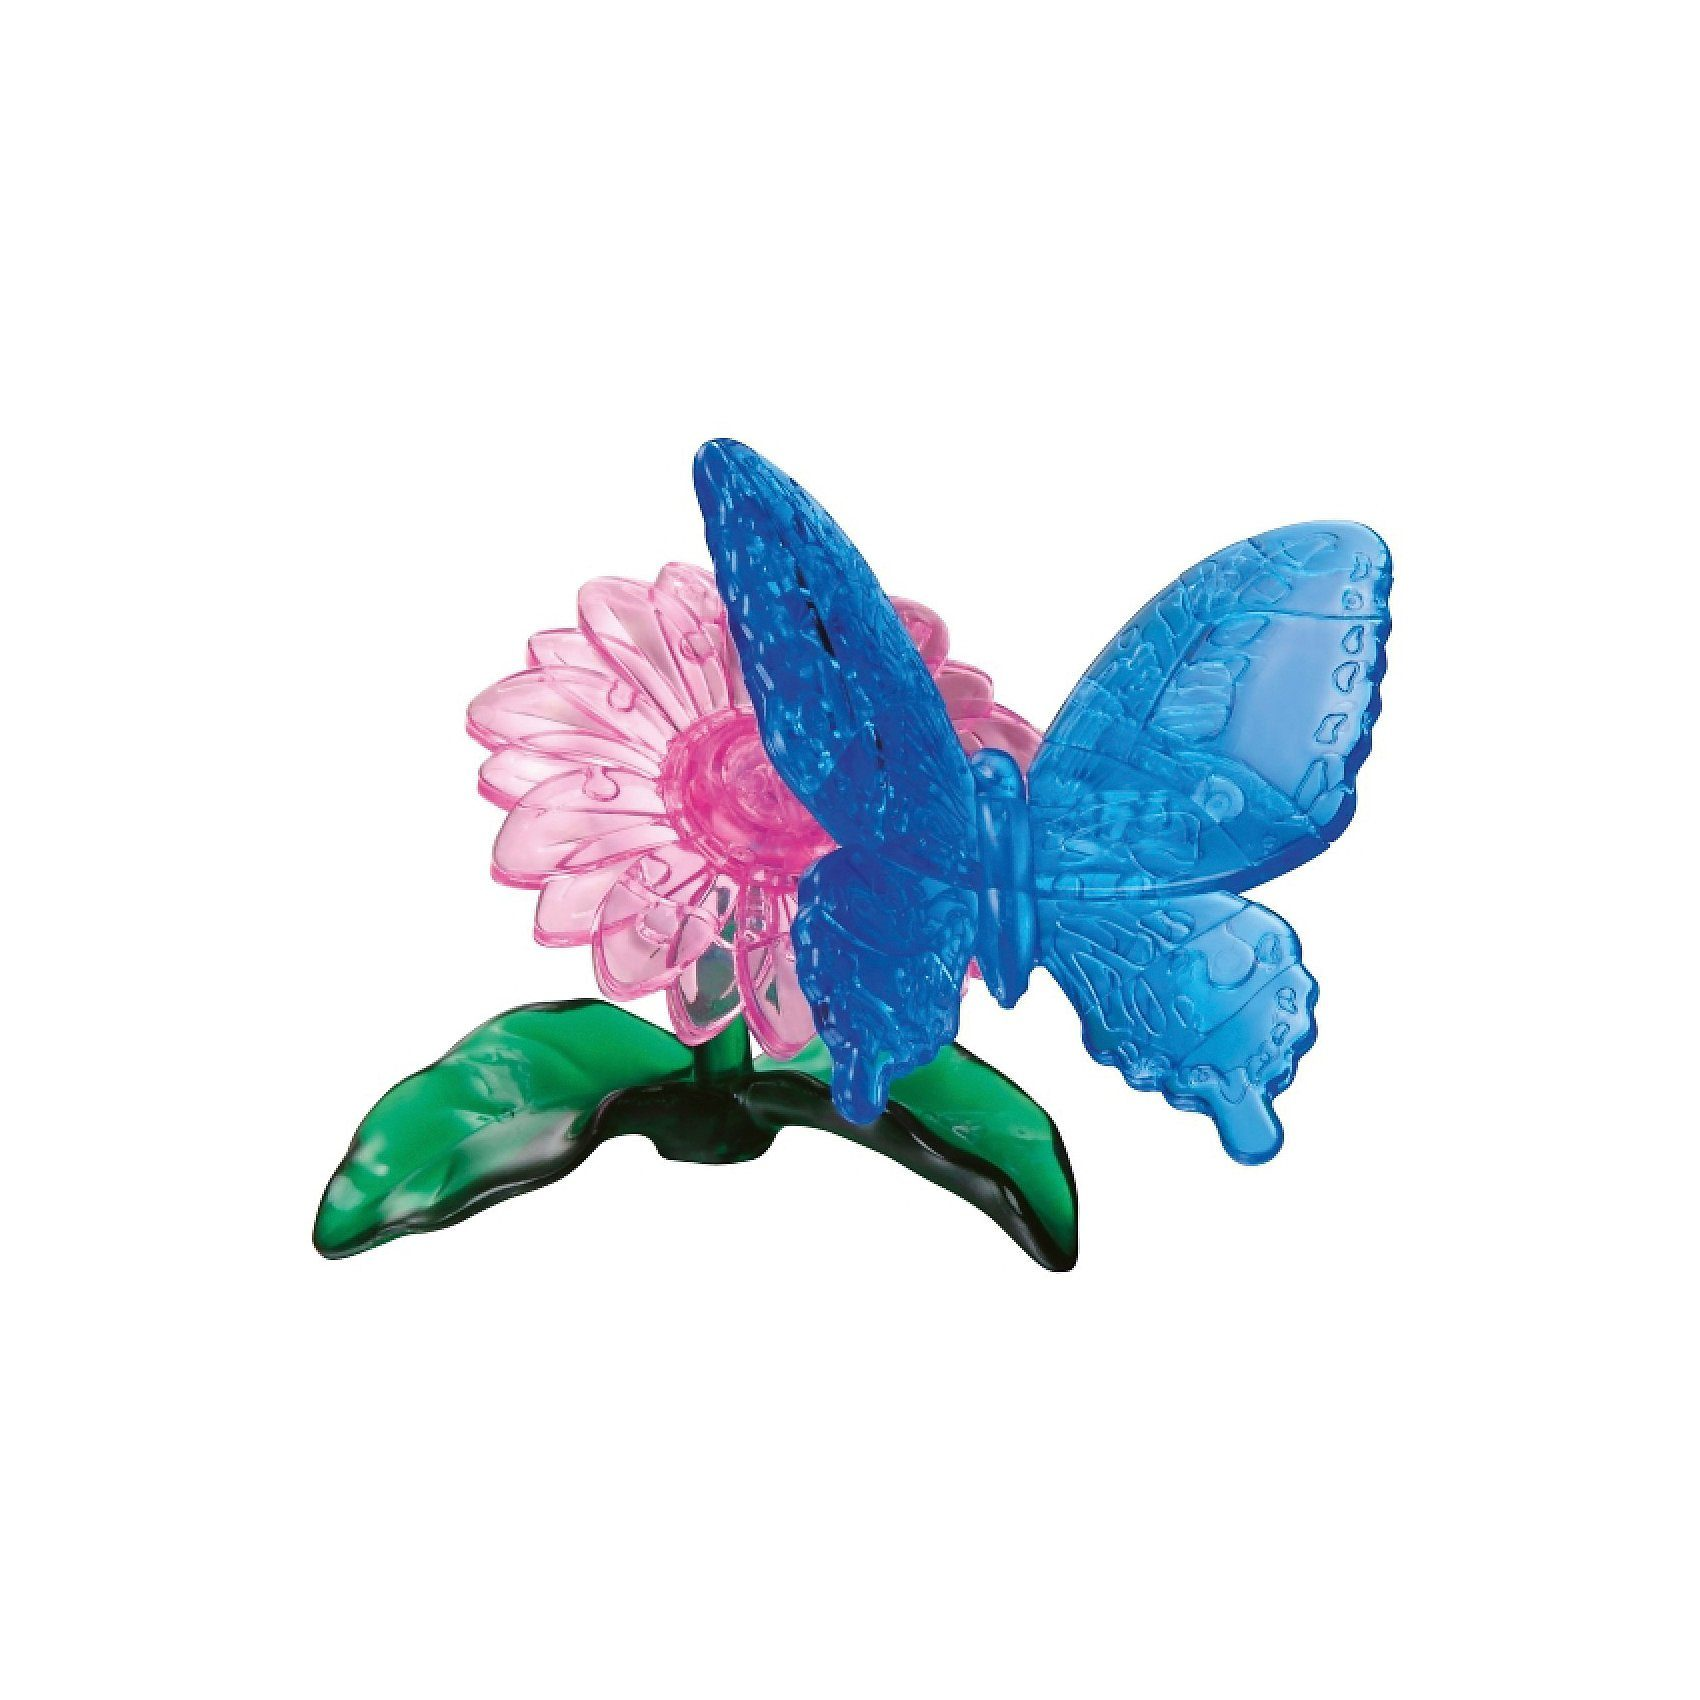 Crystal Puzzle Schmetterling 38 T.